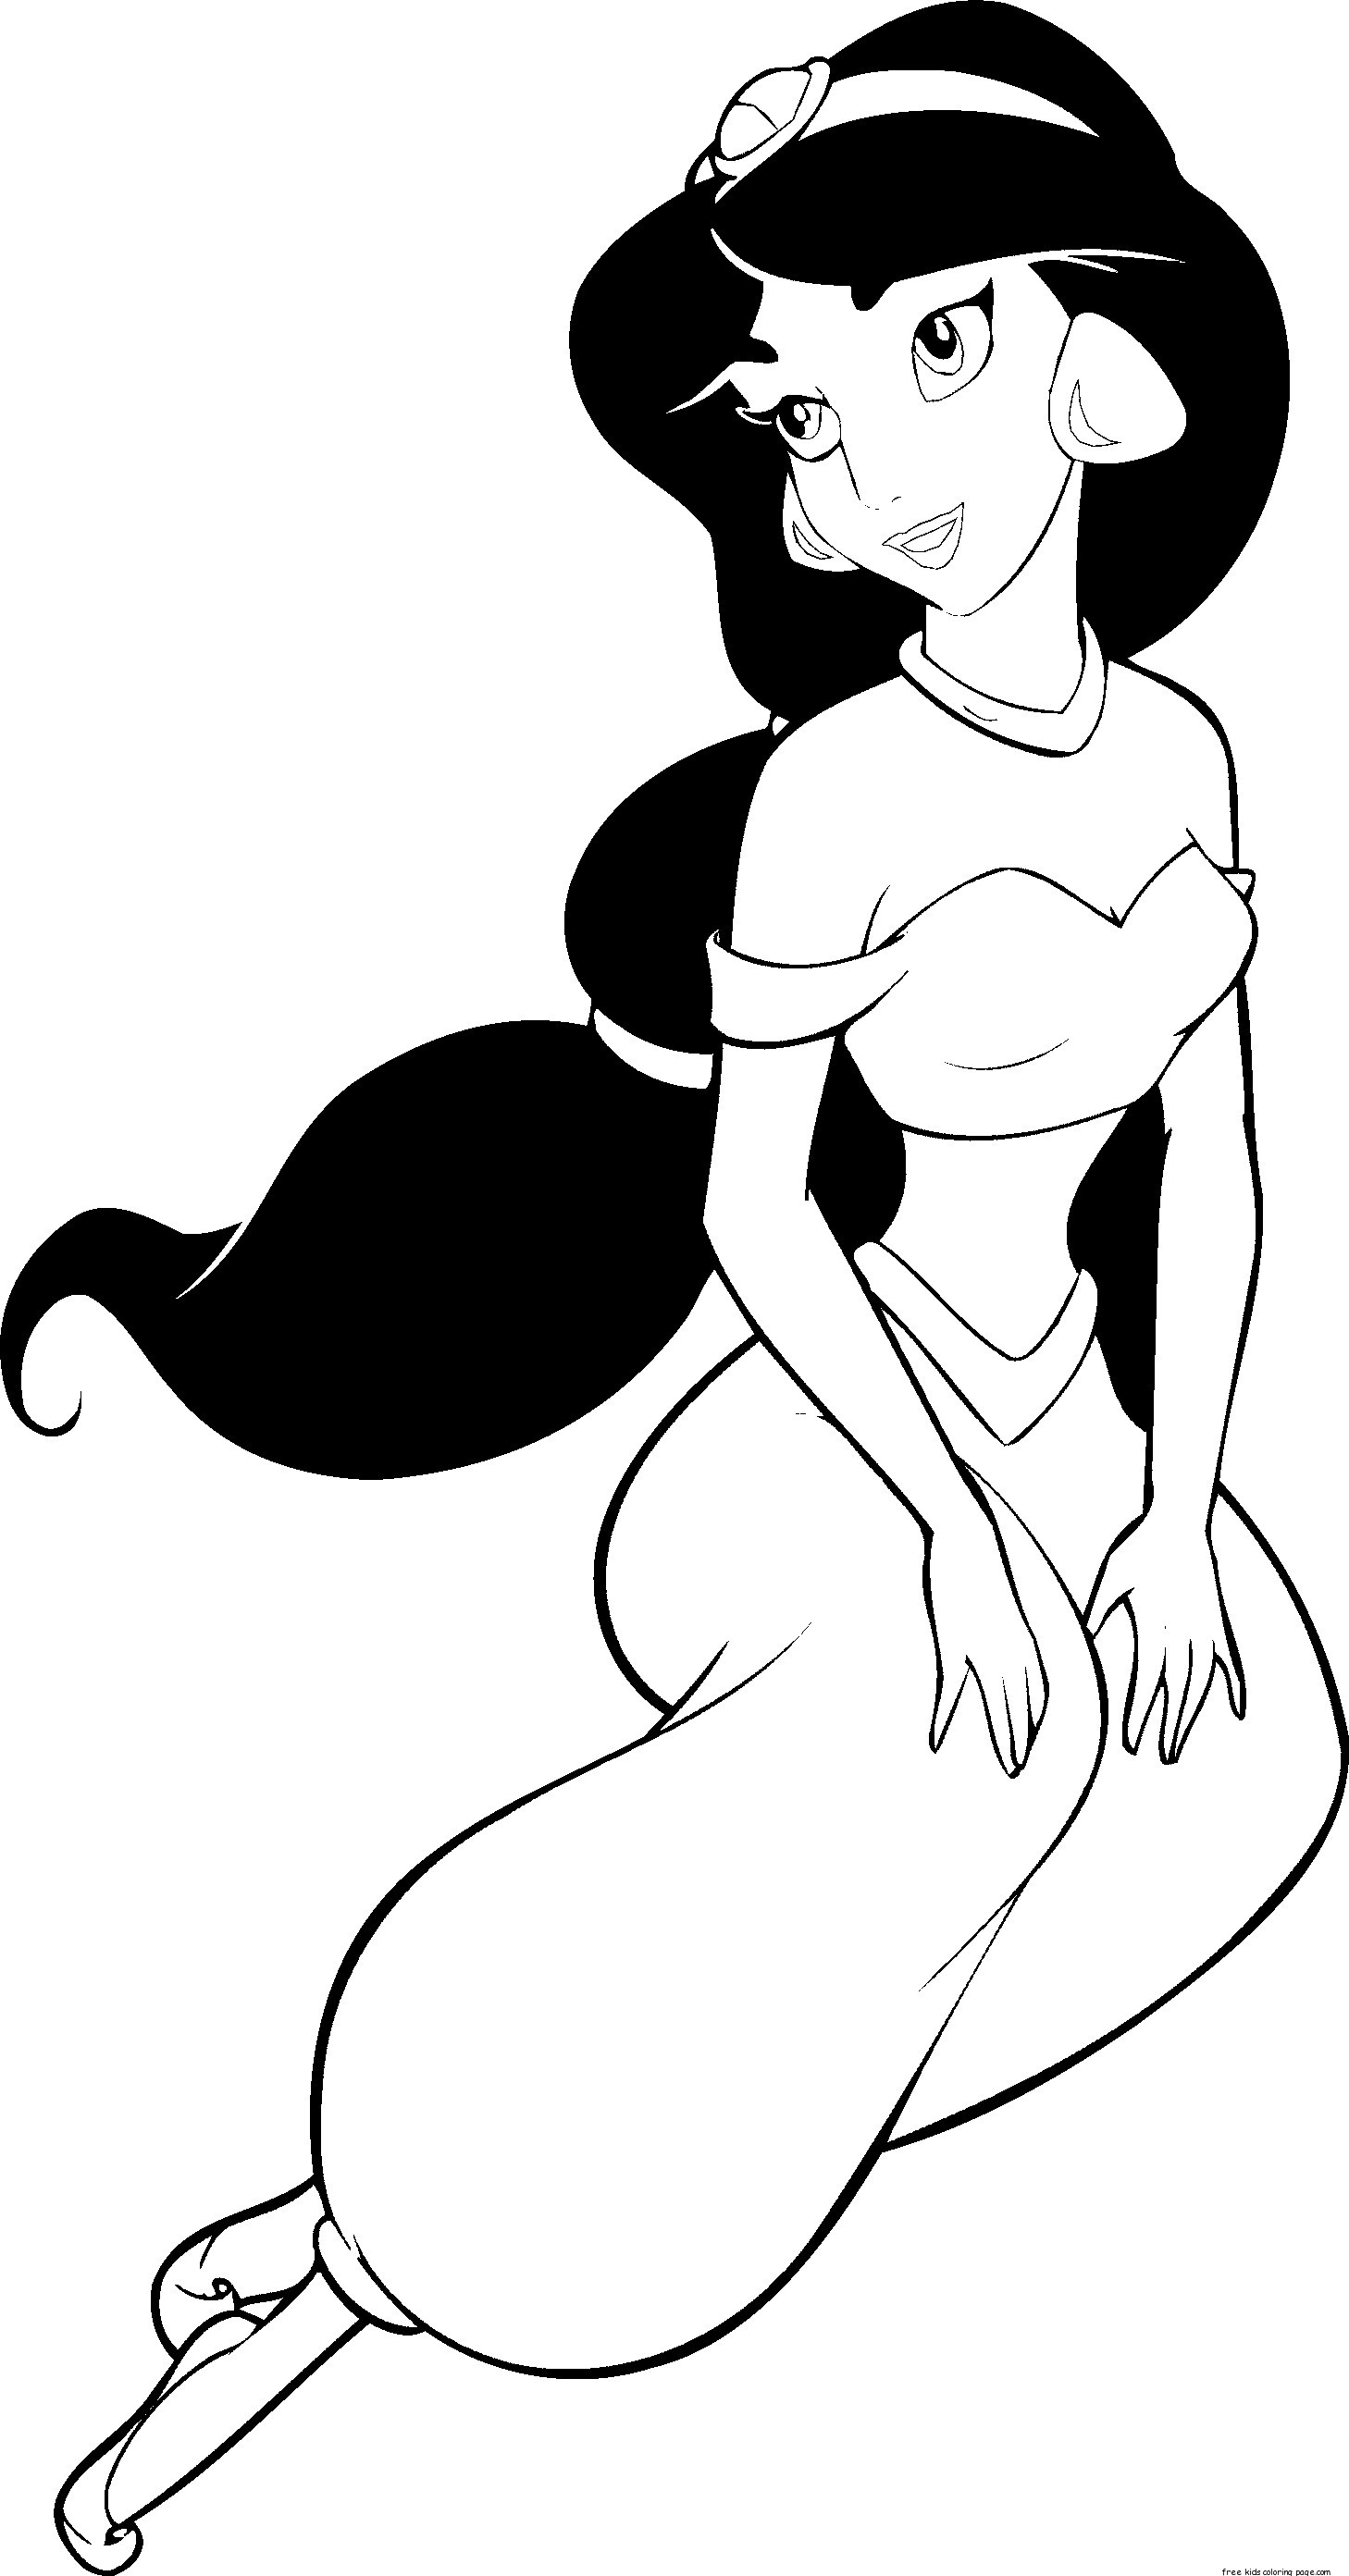 Printable Coloring Pages Princess Jasmine For Kidsfree Printable Coloring Pages For Kids